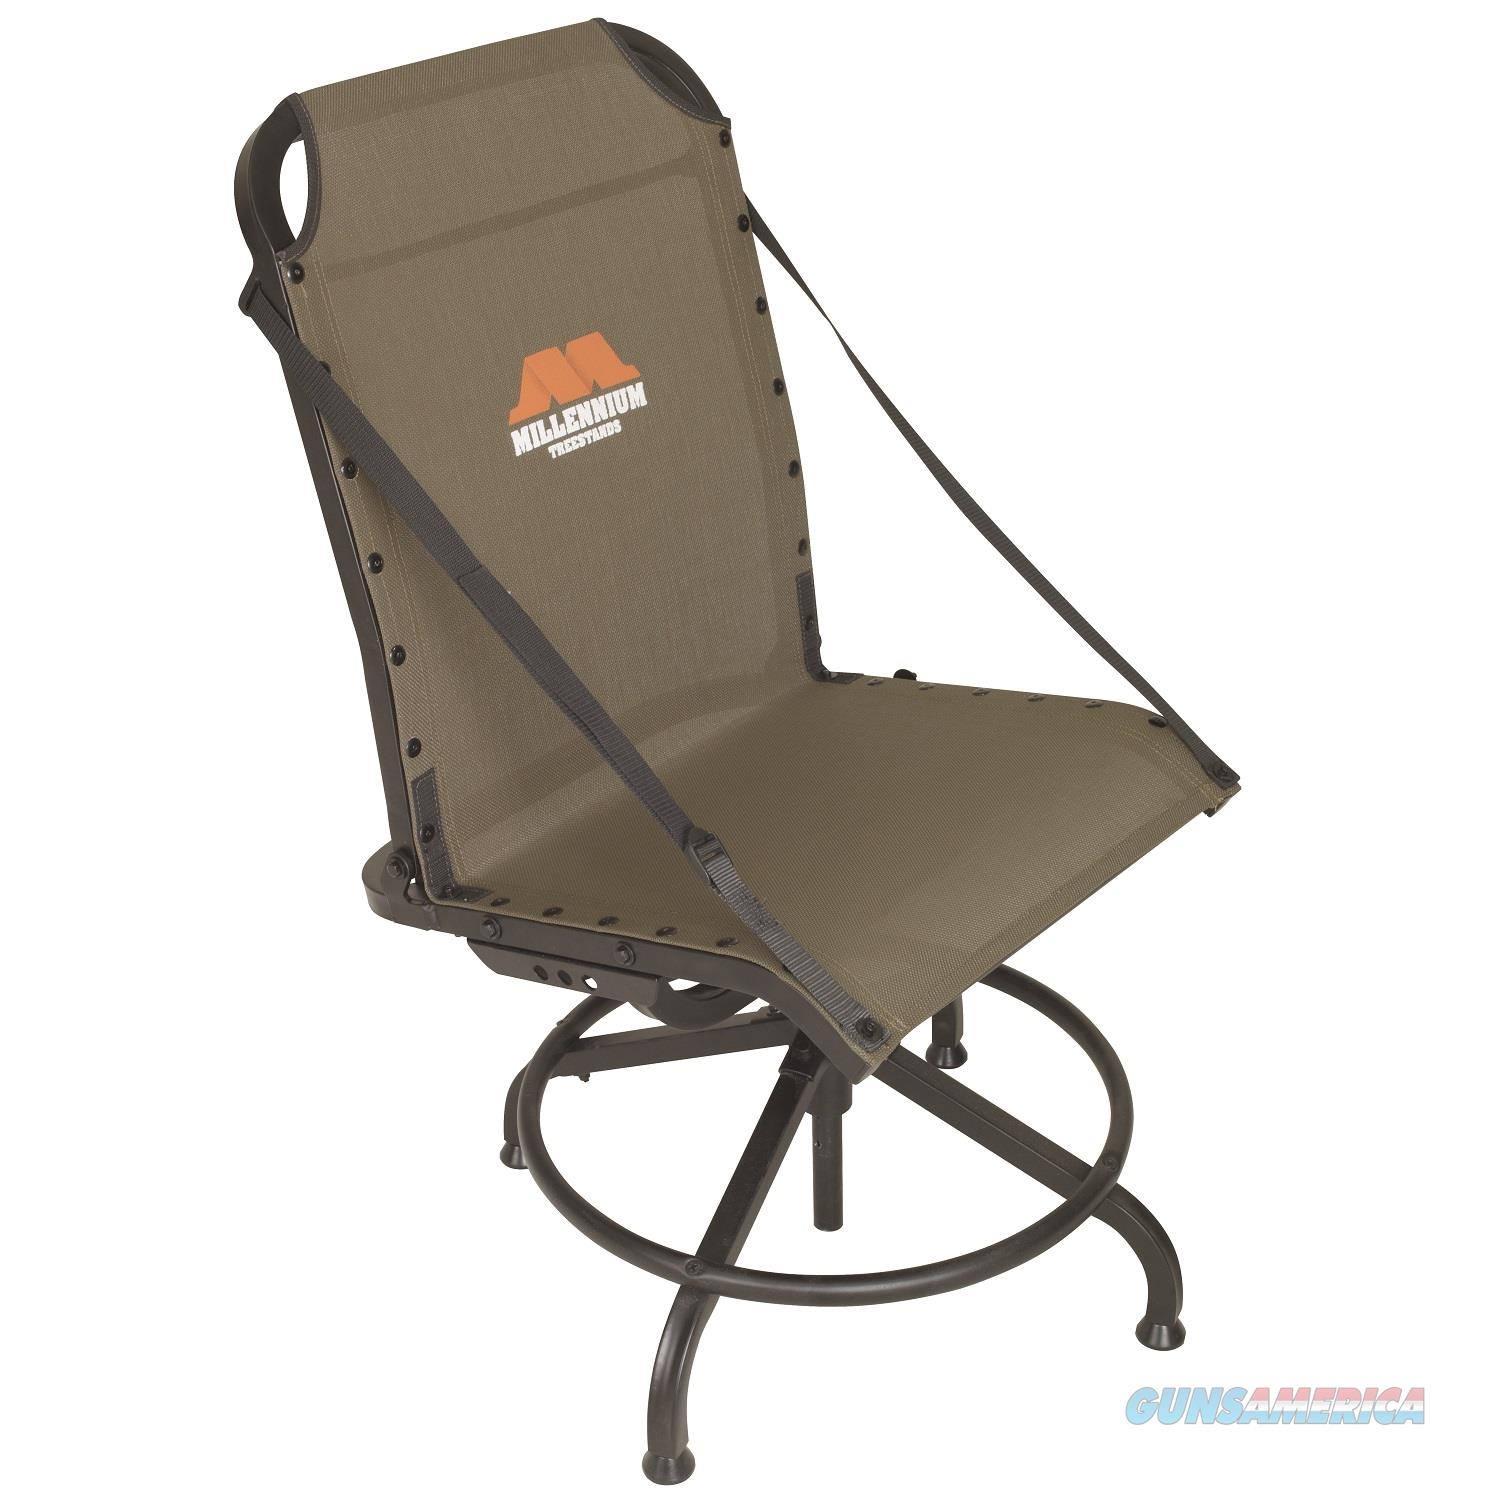 Millennium Shooting House Chair G-200  Non-Guns > Hunting Clothing and Equipment > Blinds